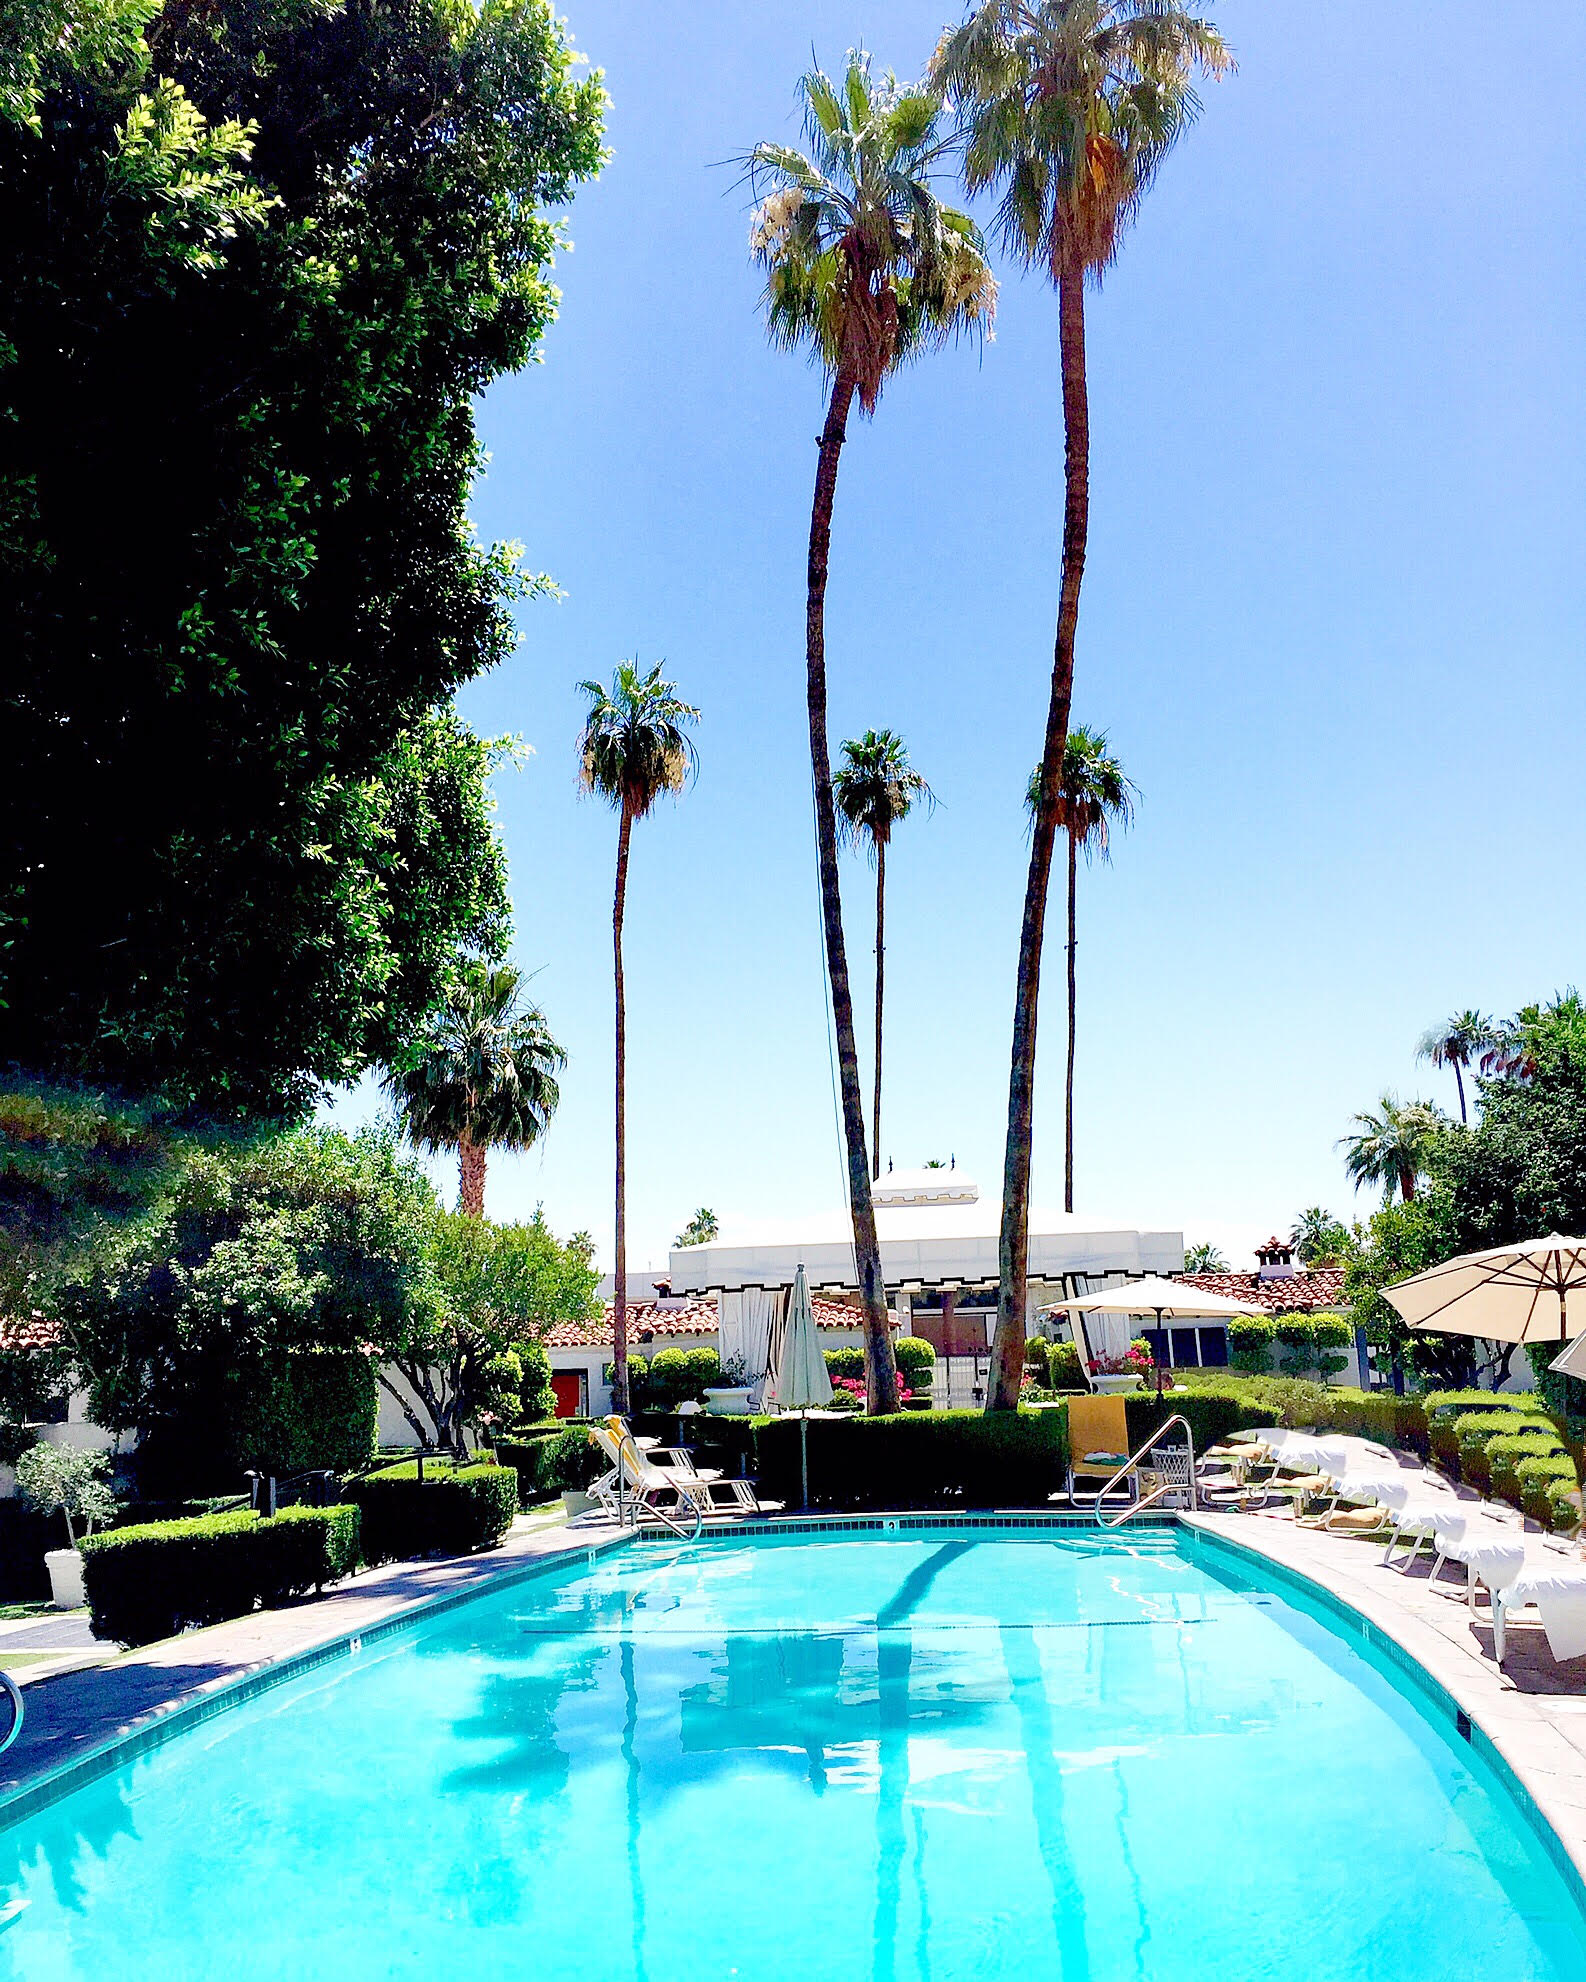 TRAVEL GUIDE: PALM SPRINGS, CA